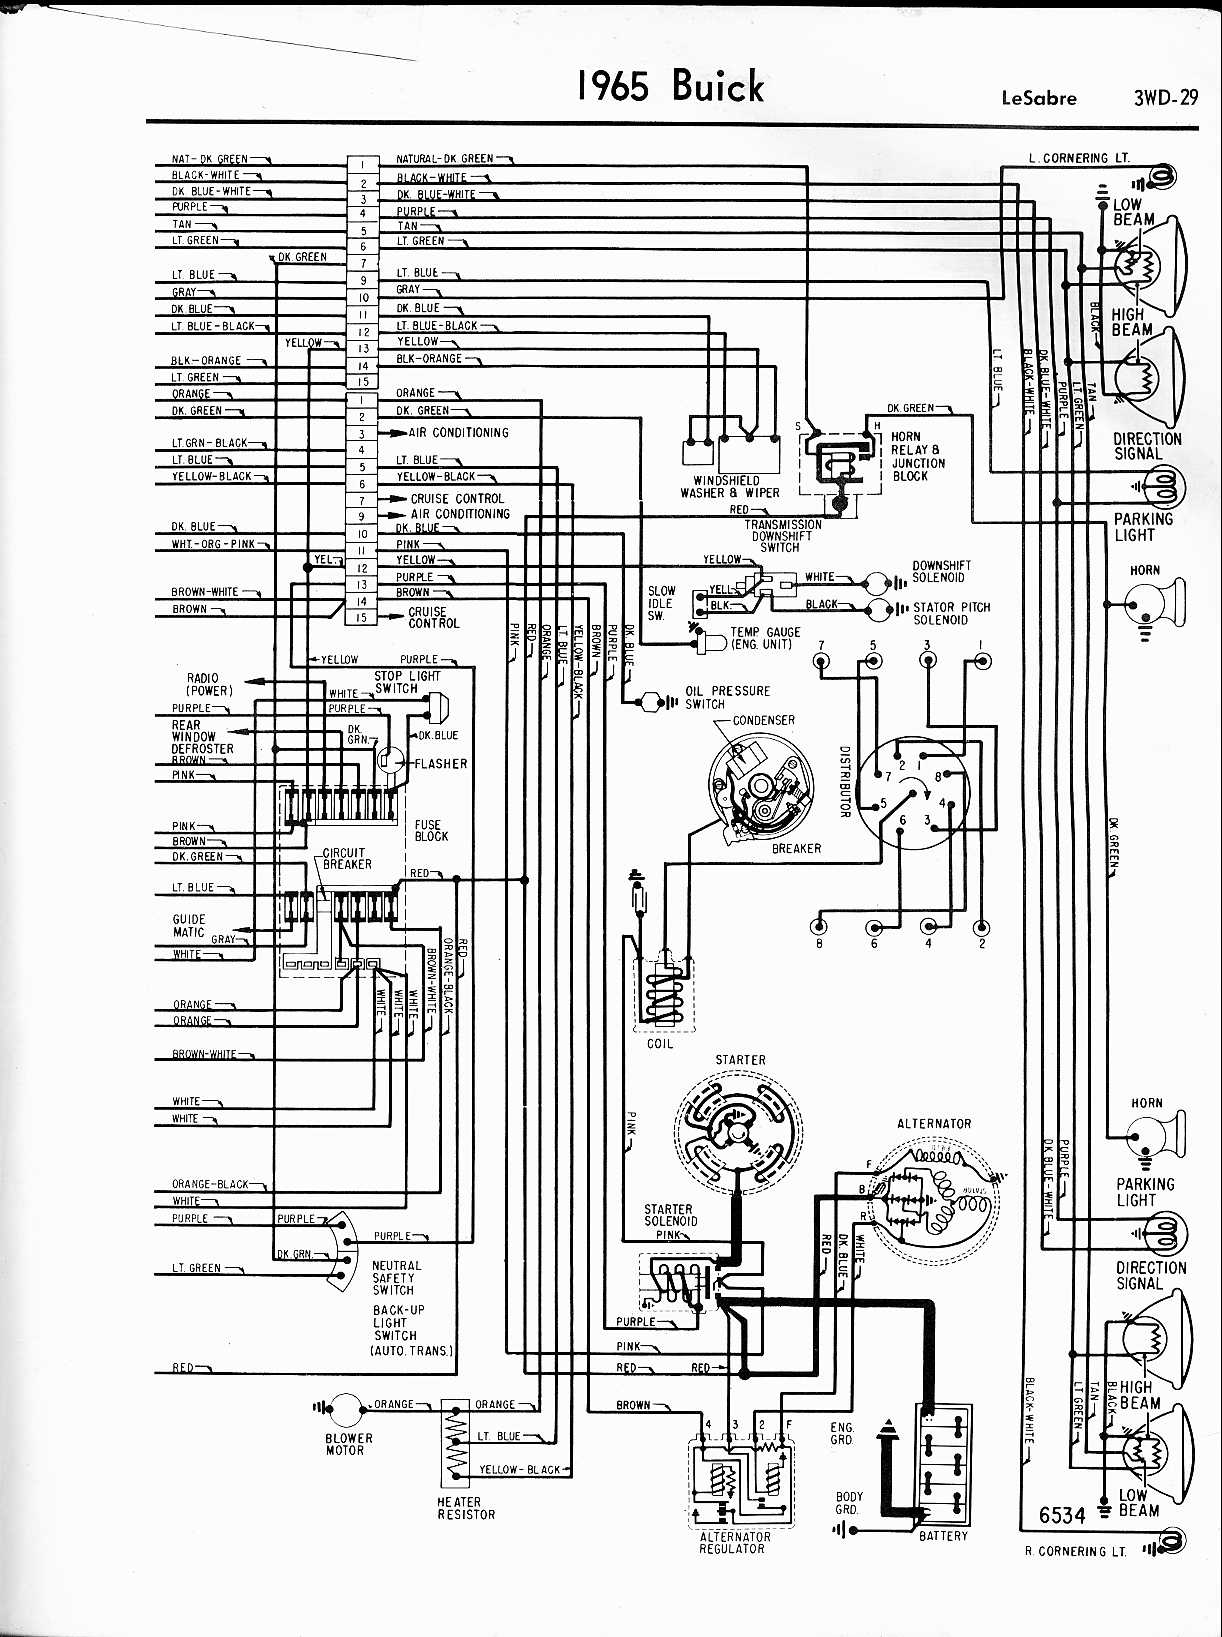 Wiring Diagram 72 Buick Skylark - Search Wiring Diagram for ... on 1988 mustang wiring diagram, 67 charger wiring diagram, 1967 charger headlights, 1983 mustang wiring diagram, 1969 barracuda wiring diagram, 1984 mustang wiring diagram, 1968 charger wiring diagram, 1967 charger automatic transmission, 1970 challenger wiring diagram, 1986 mustang wiring diagram, 1995 mustang wiring diagram, 1970 charger wiring diagram, 1966 charger wiring diagram, 1969 charger wiring diagram, 1970 dart wiring diagram, 1979 mustang wiring diagram, 1968 roadrunner wiring diagram, 1967 charger seats, 1973 charger wiring diagram, 1969 roadrunner wiring diagram,